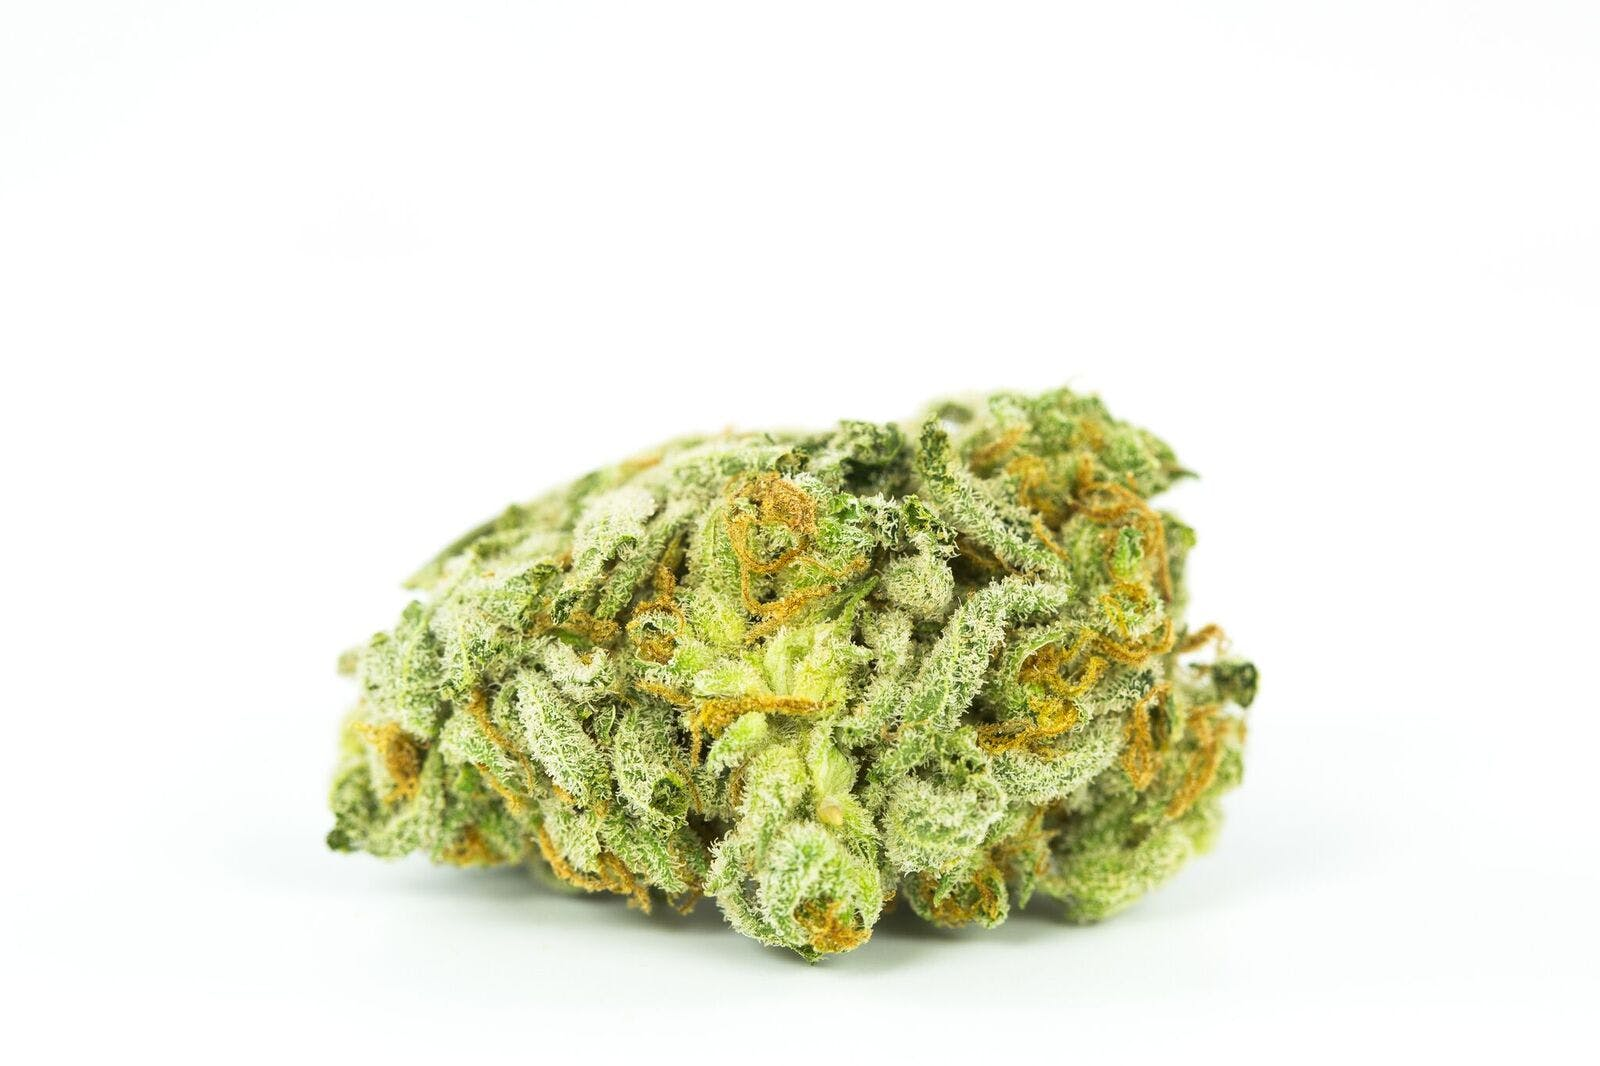 Tangerine Power Weed; Tangerine Power Cannabis Strain; Tangerine Power Hybrid Marijuana Strain